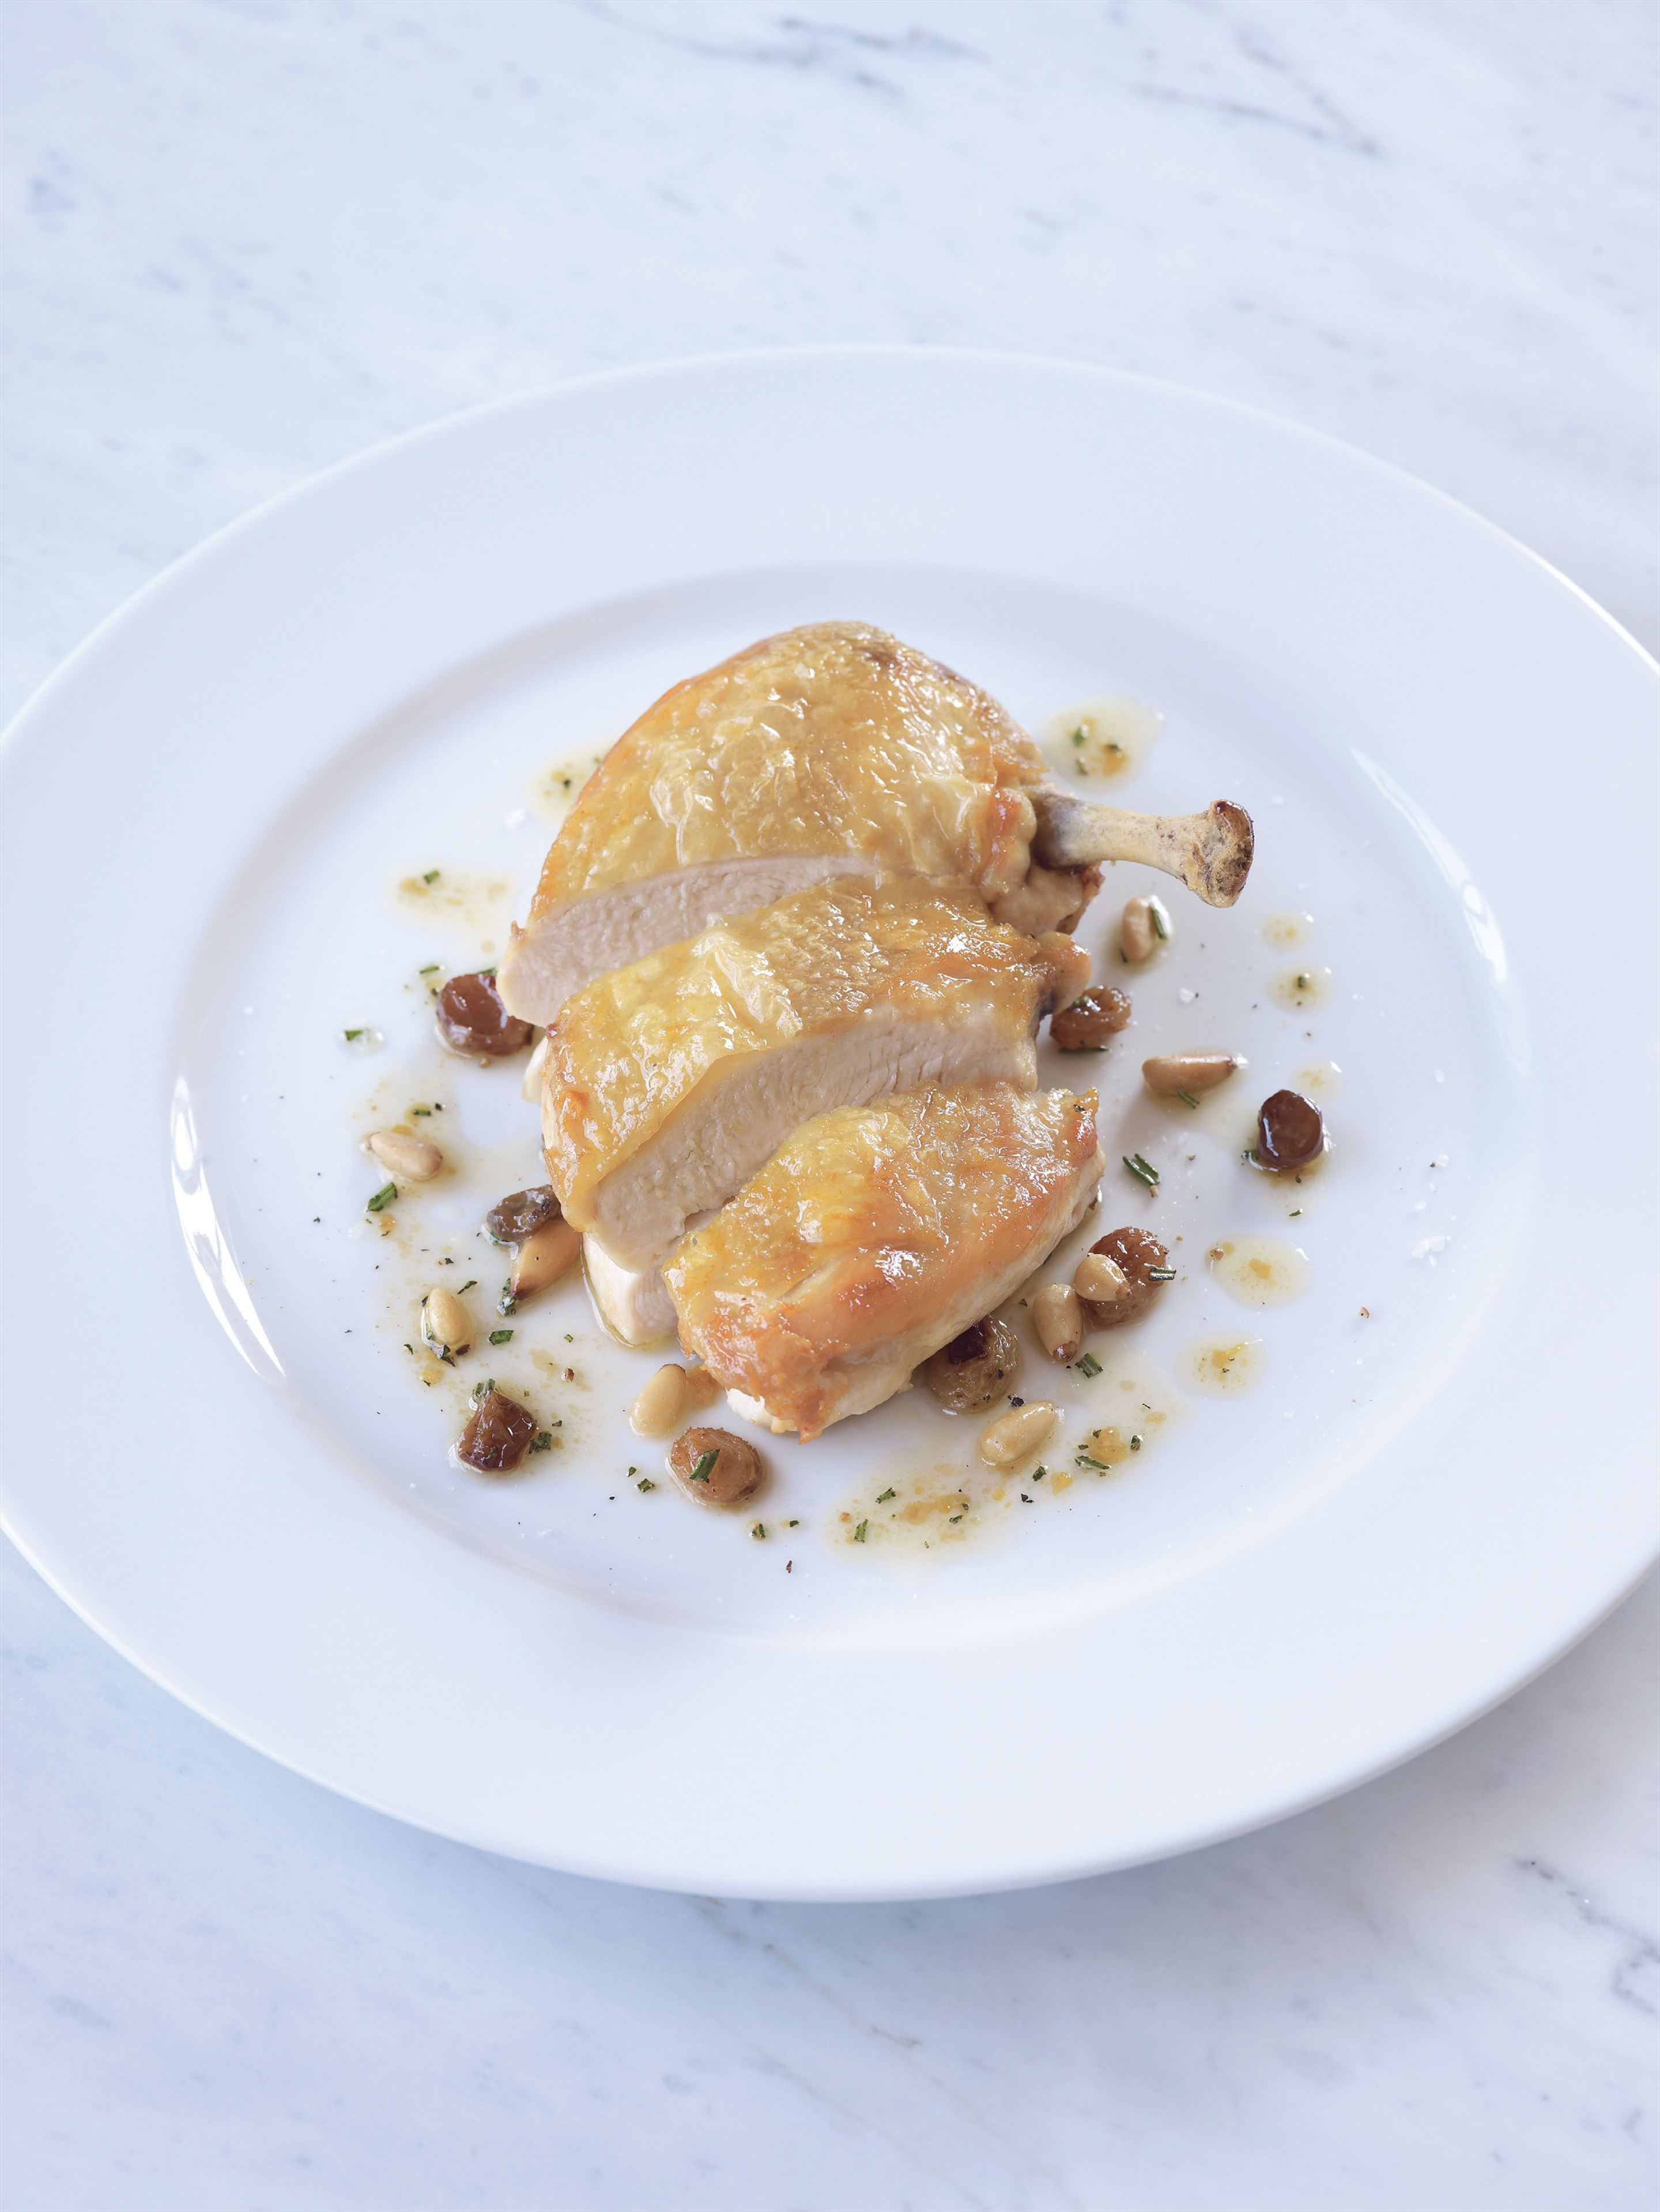 Chicken breasts with rosemary, lemon and pine nuts